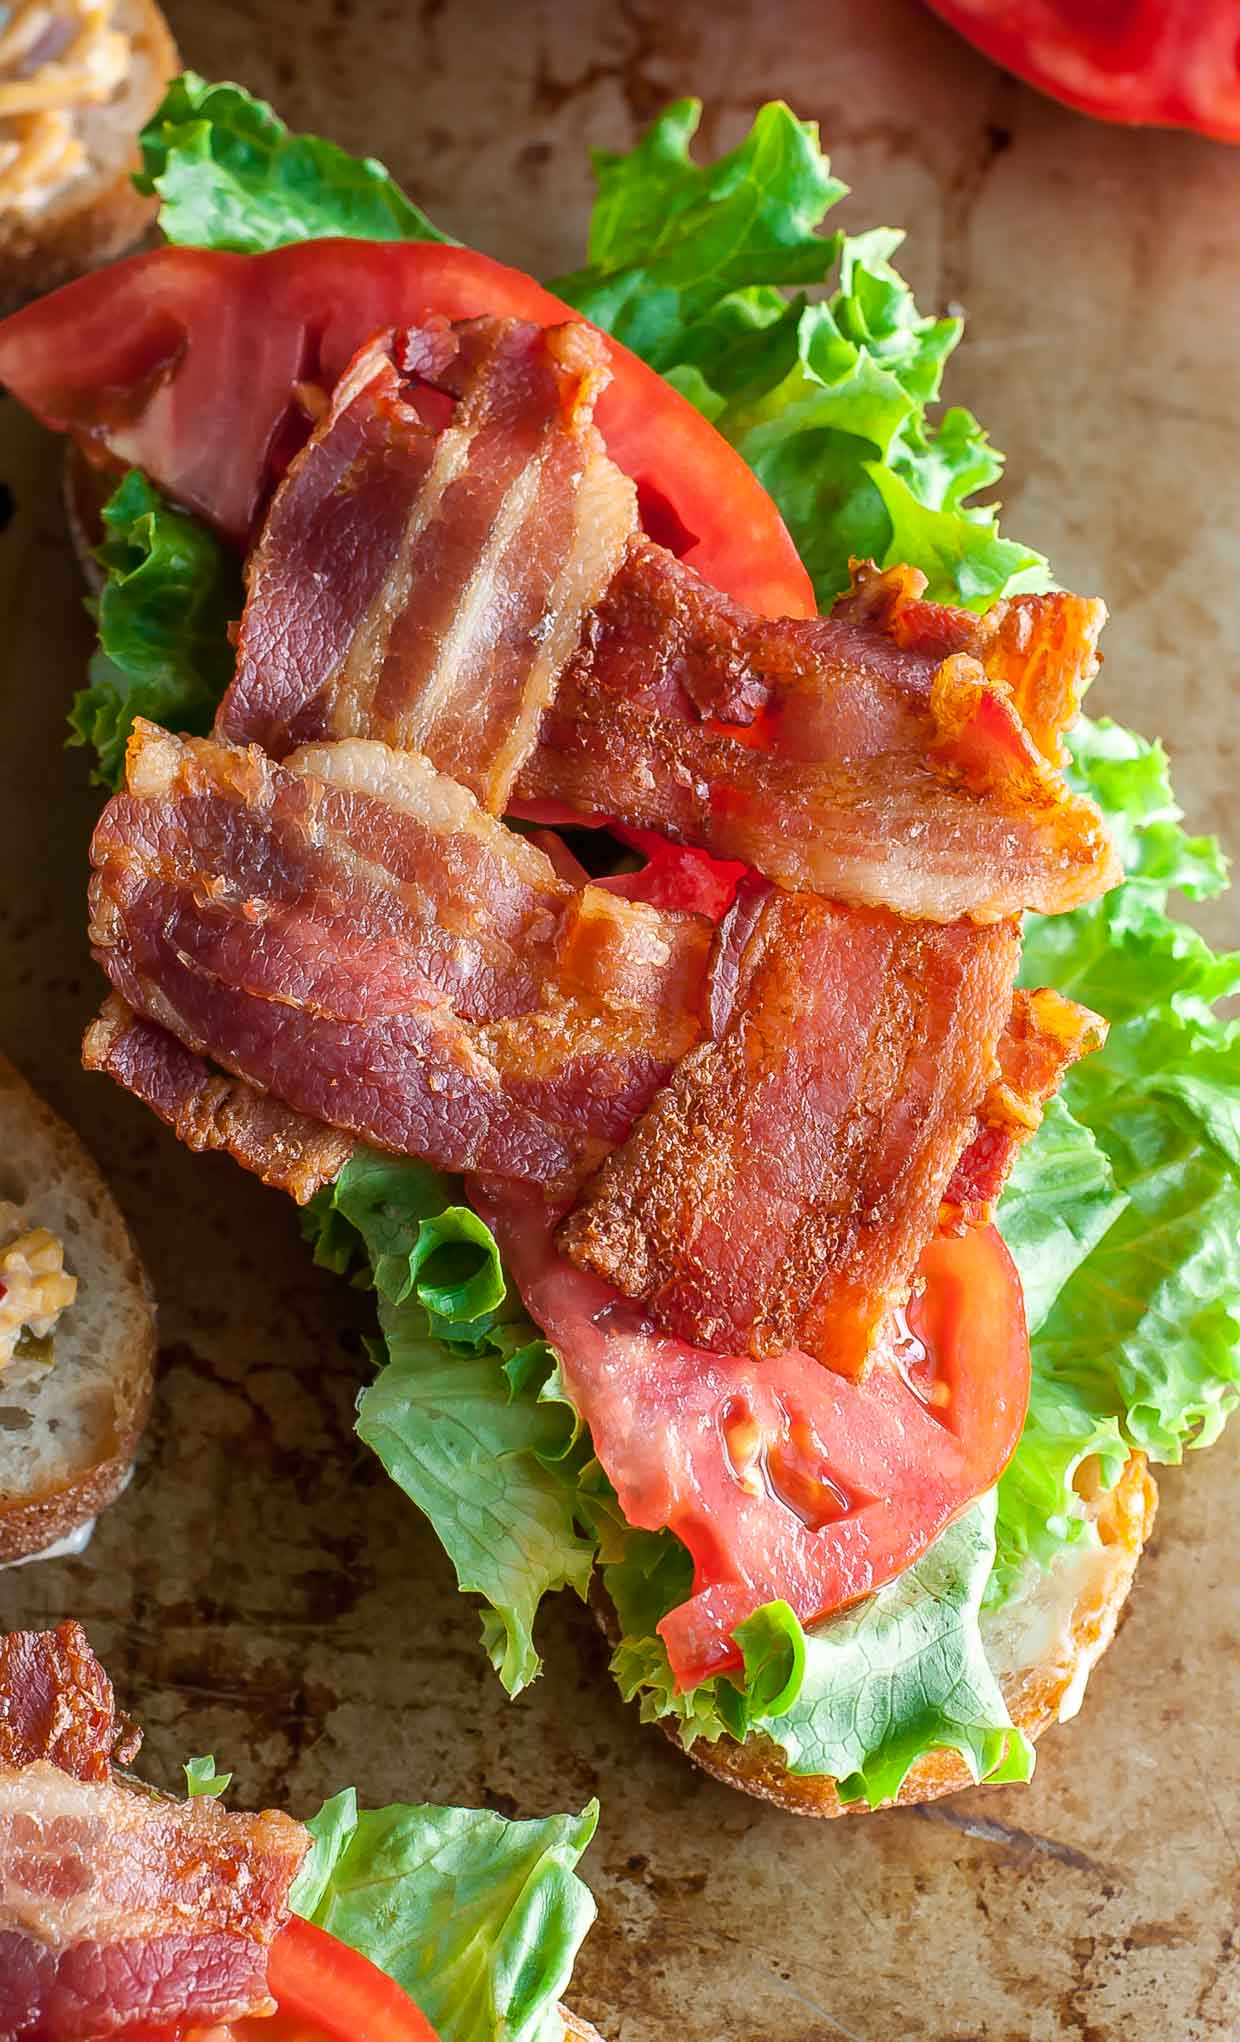 Bacon lettuce and tomato sandwich open faced